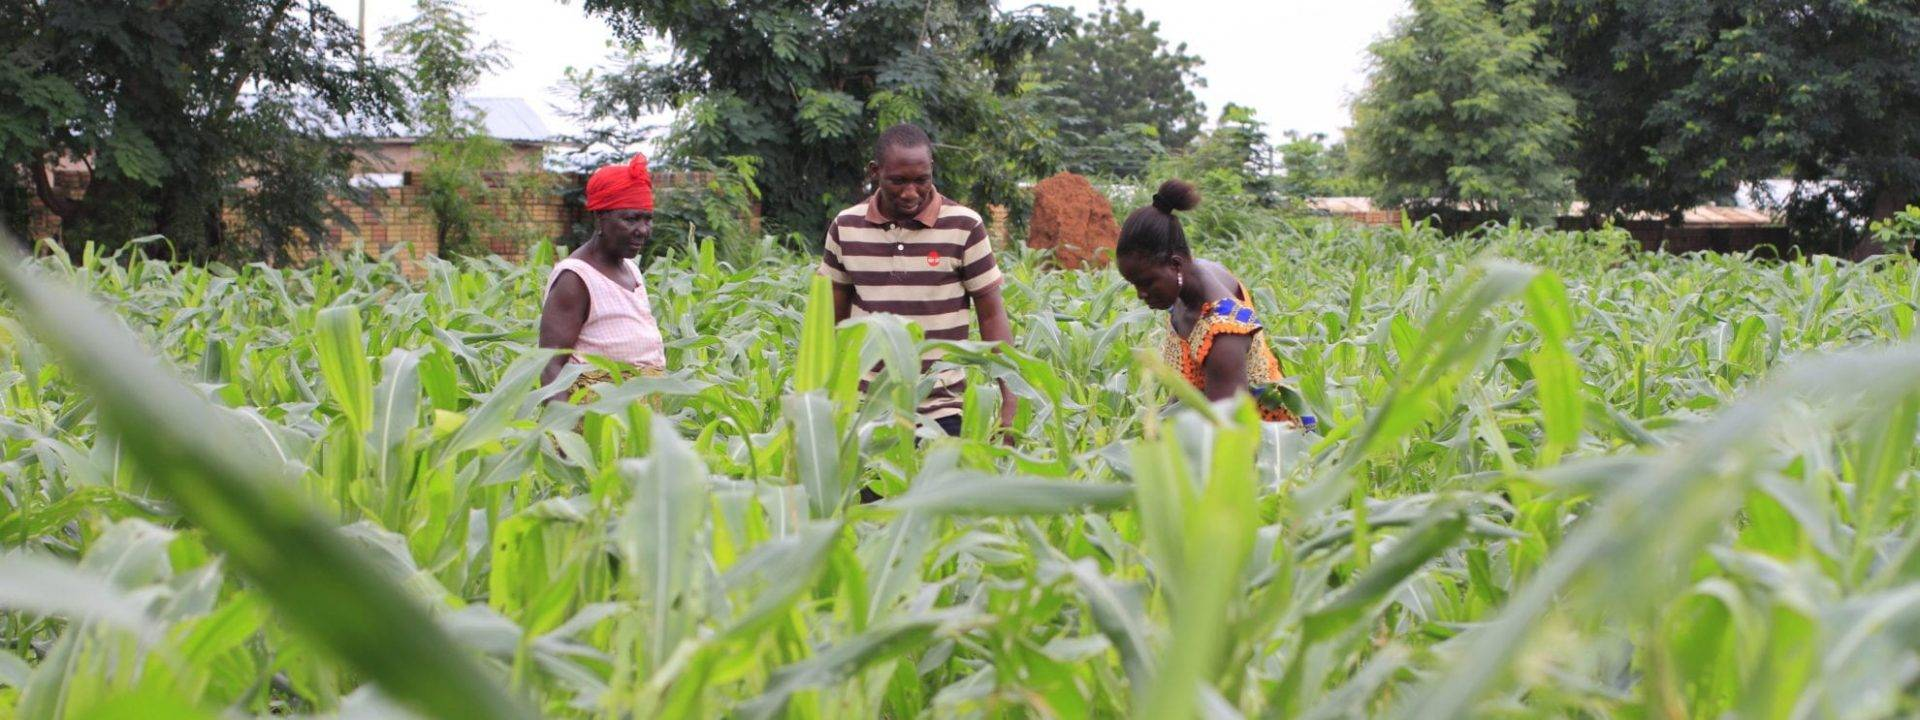 Injaro Strikes An Exit From Ghana's Maize Seed Producer M&B